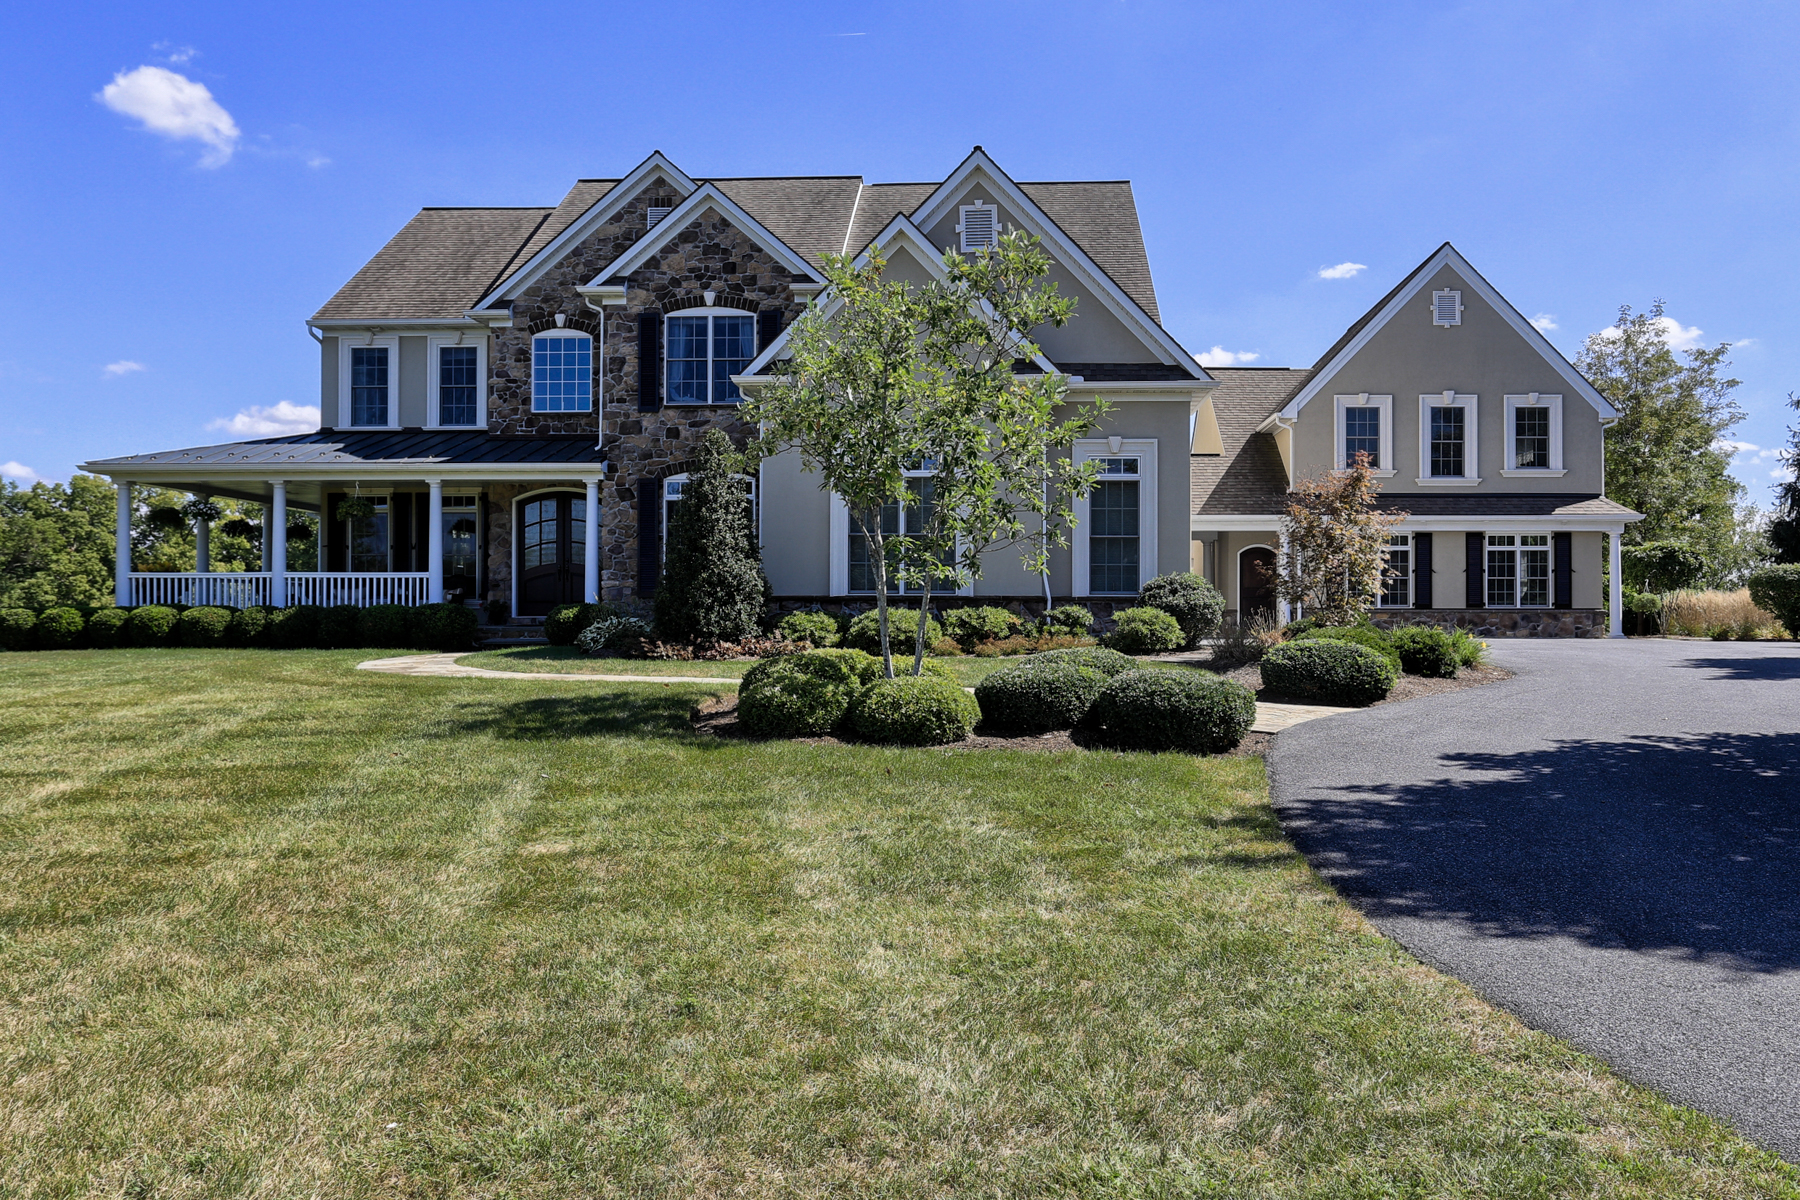 Single Family Home for Sale at Bent Creek Country Club 4 Shadewood Place Lititz, Pennsylvania 17543 United States